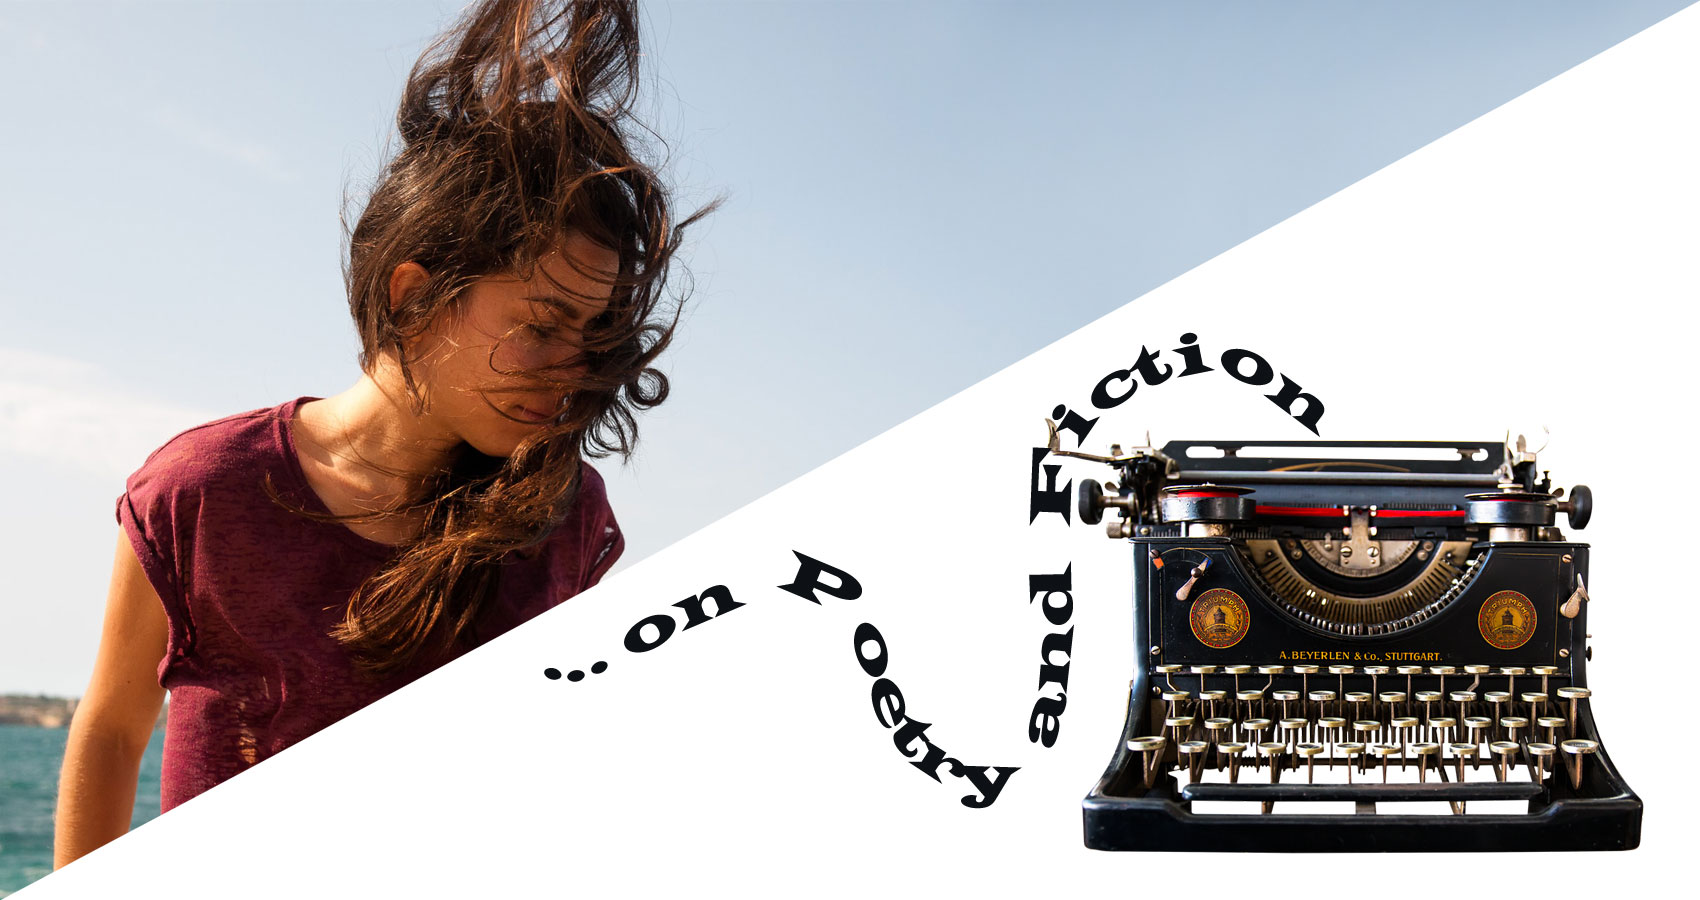 """...on Poetry and Fiction - Just """"One Word"""" Away (""""Wind""""), editorial by Phyllis P. Colucci at Spillwords.com"""